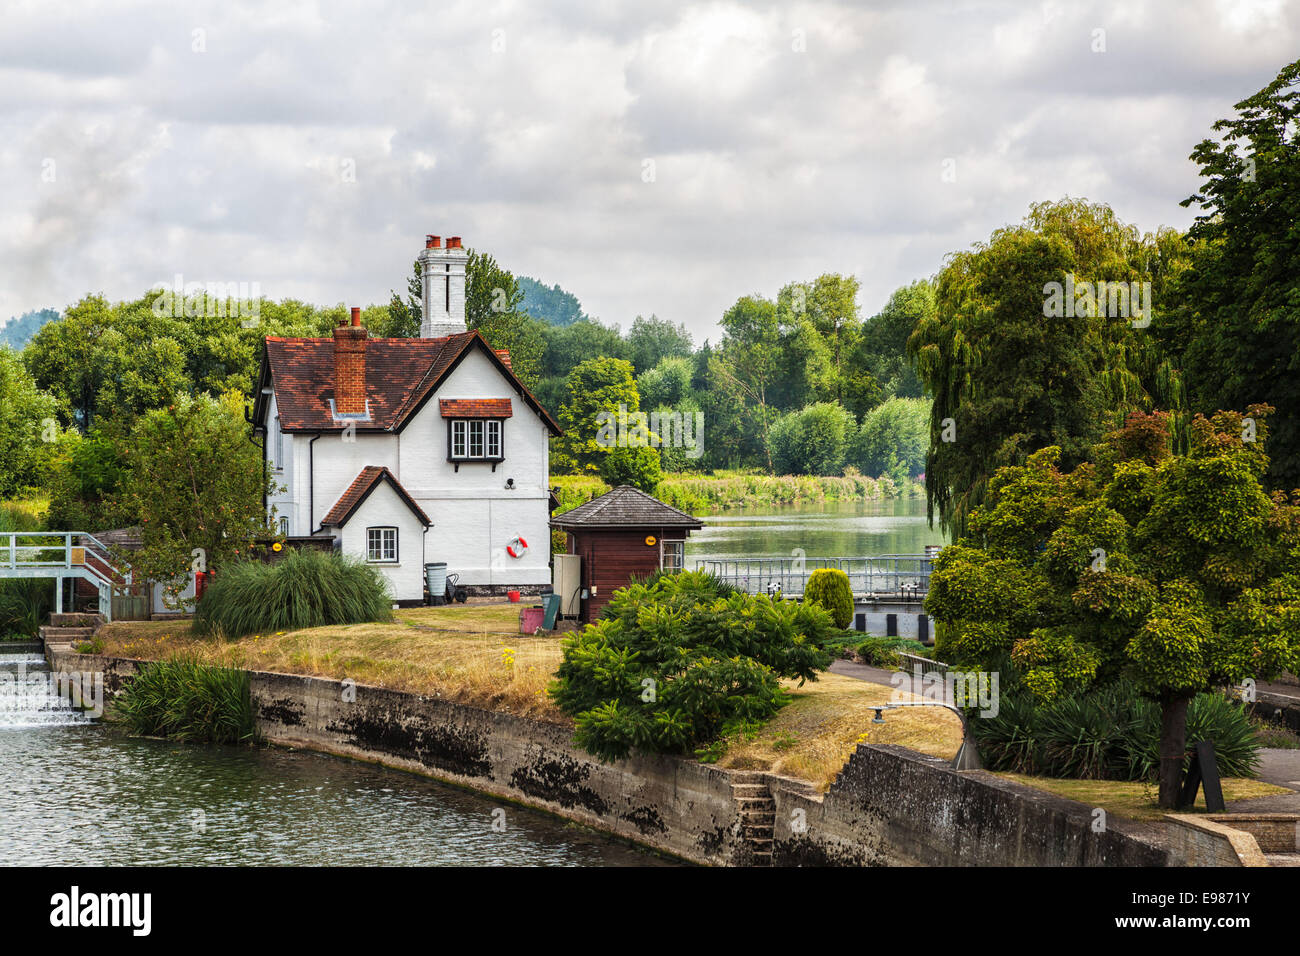 White house near the Thames River Canal, English countryside cottage beside the river canal. - Stock Image